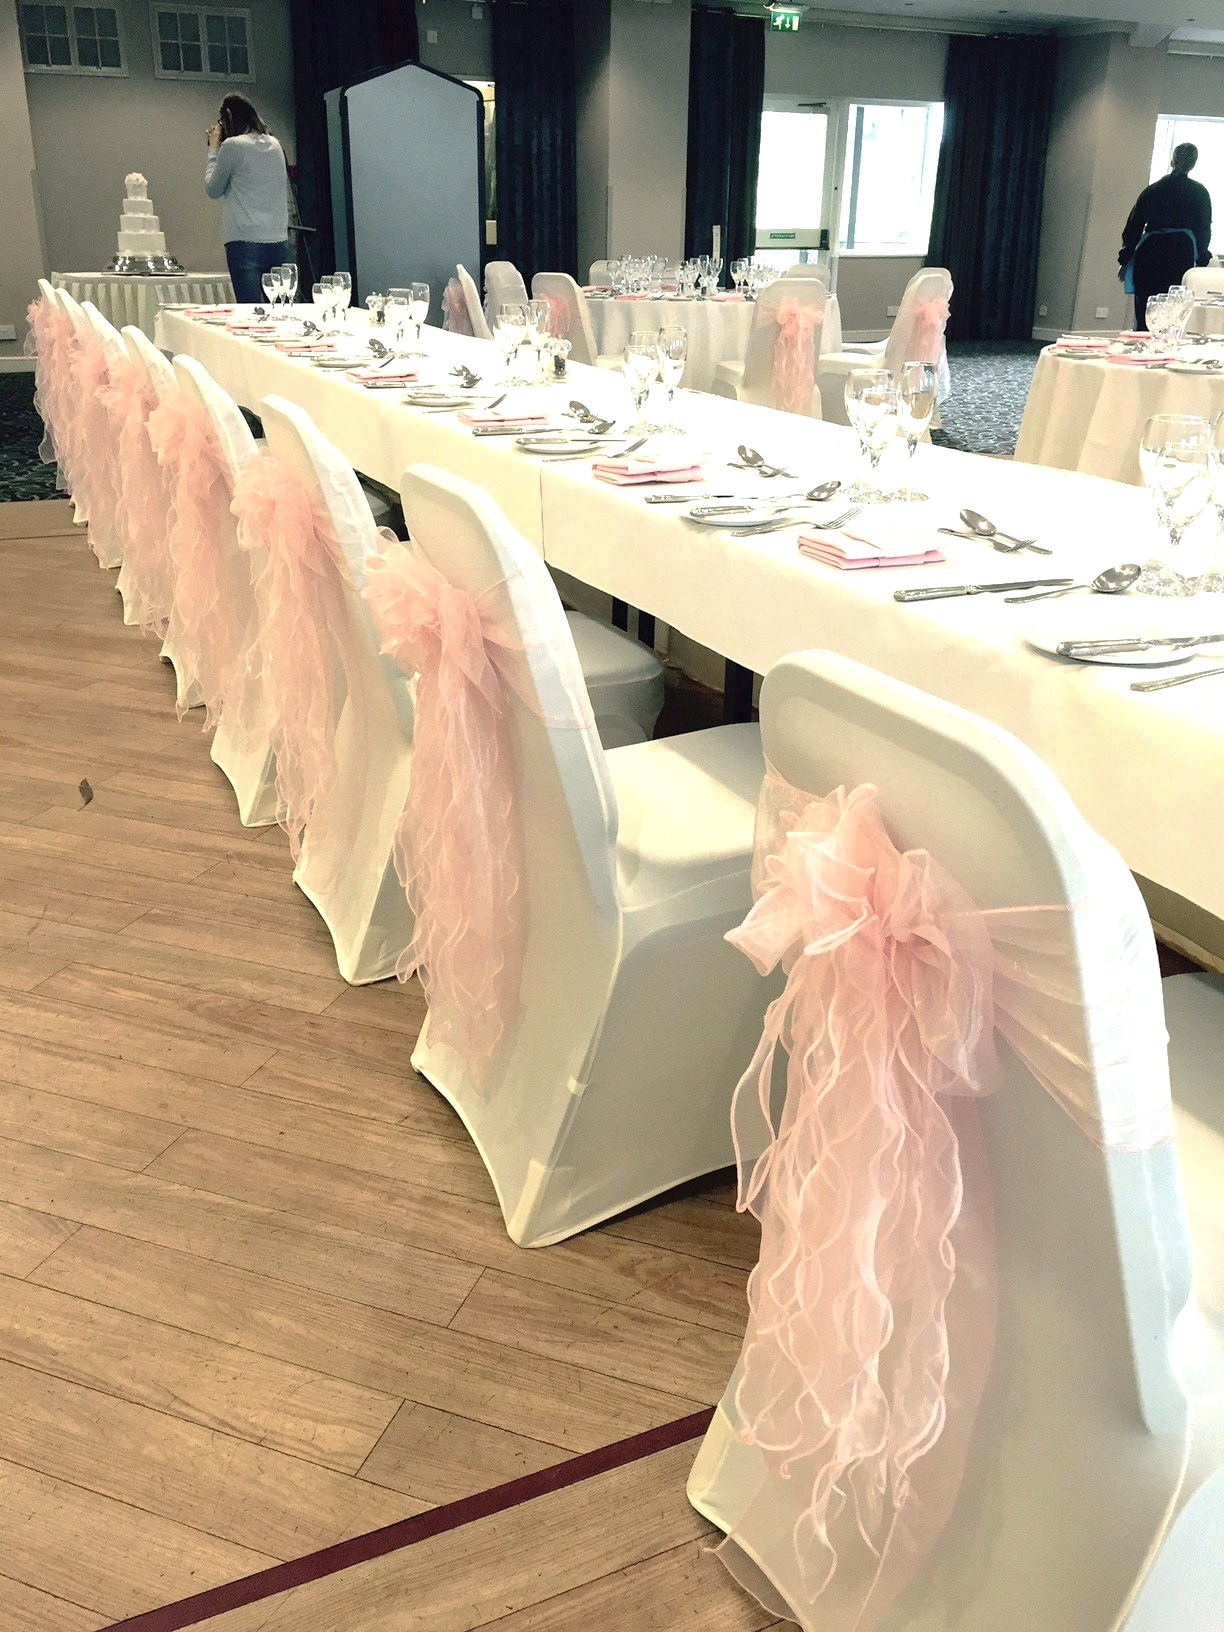 chair covers morecambe small dining room chairs with arms wedding cover hire in lancashire lycra at castle green